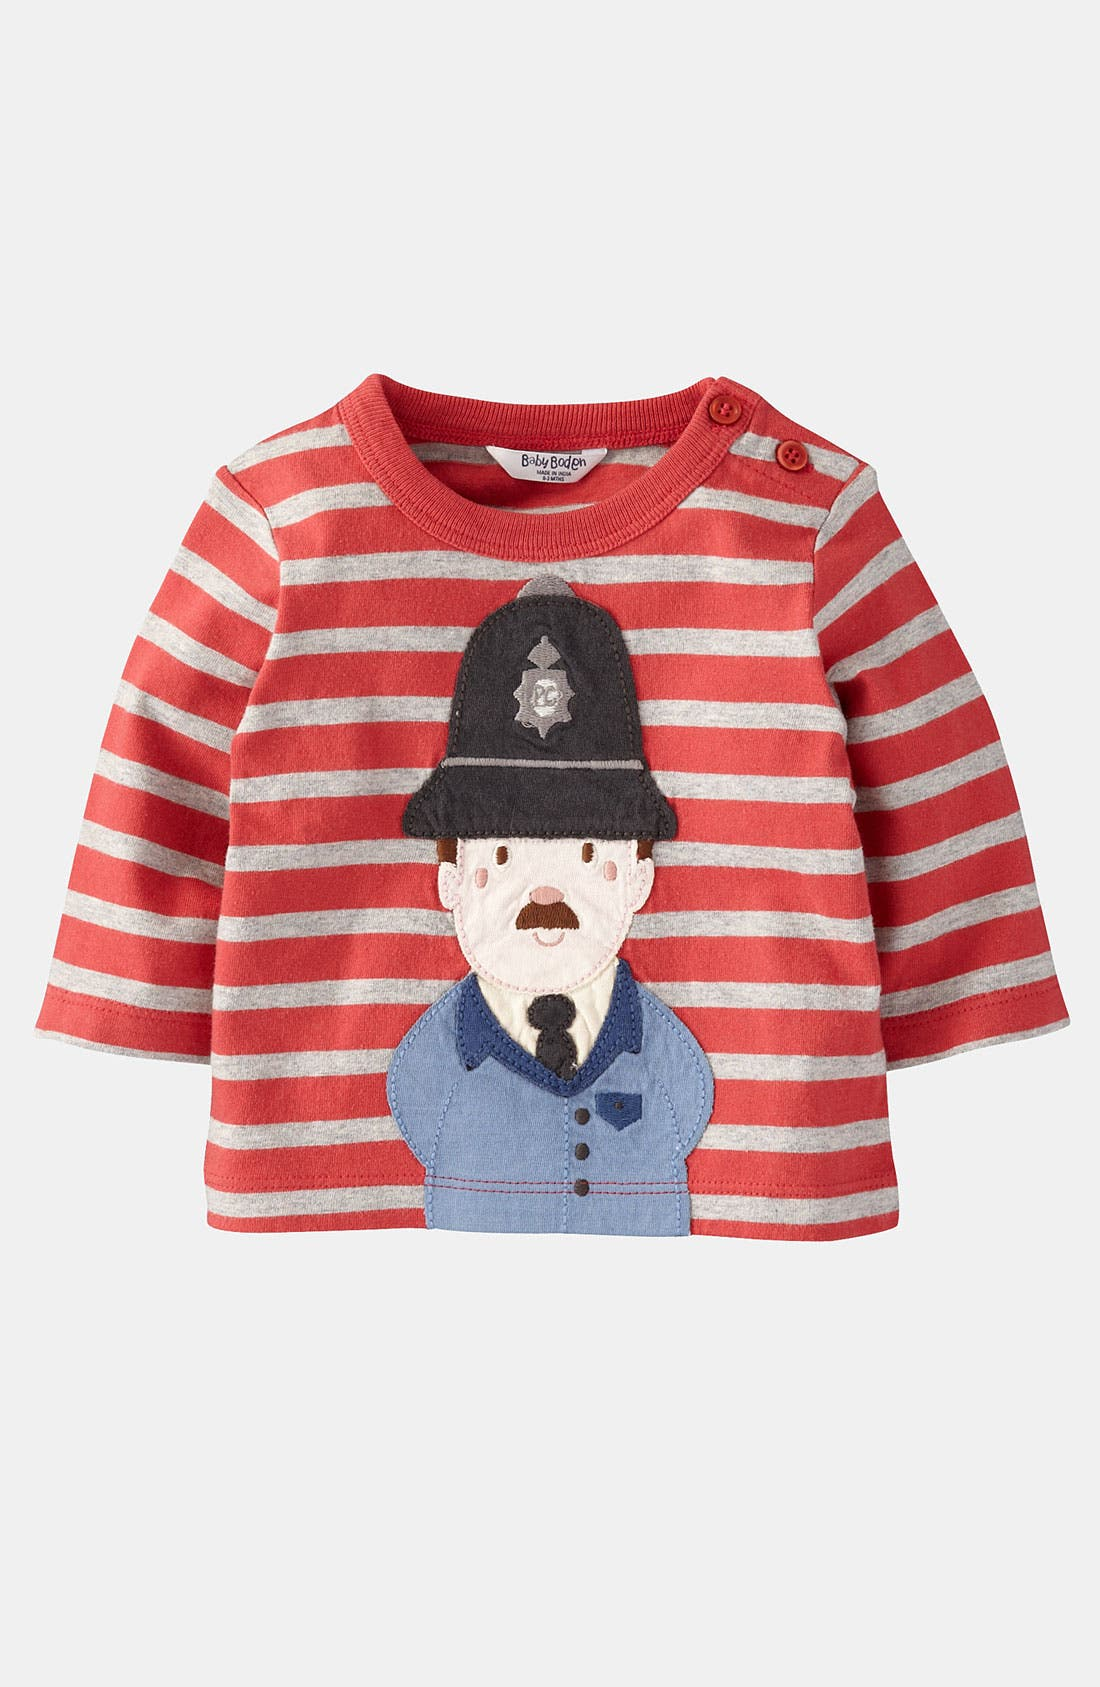 Main Image - Mini Boden 'When I Grow Up' T-Shirt (Infant)